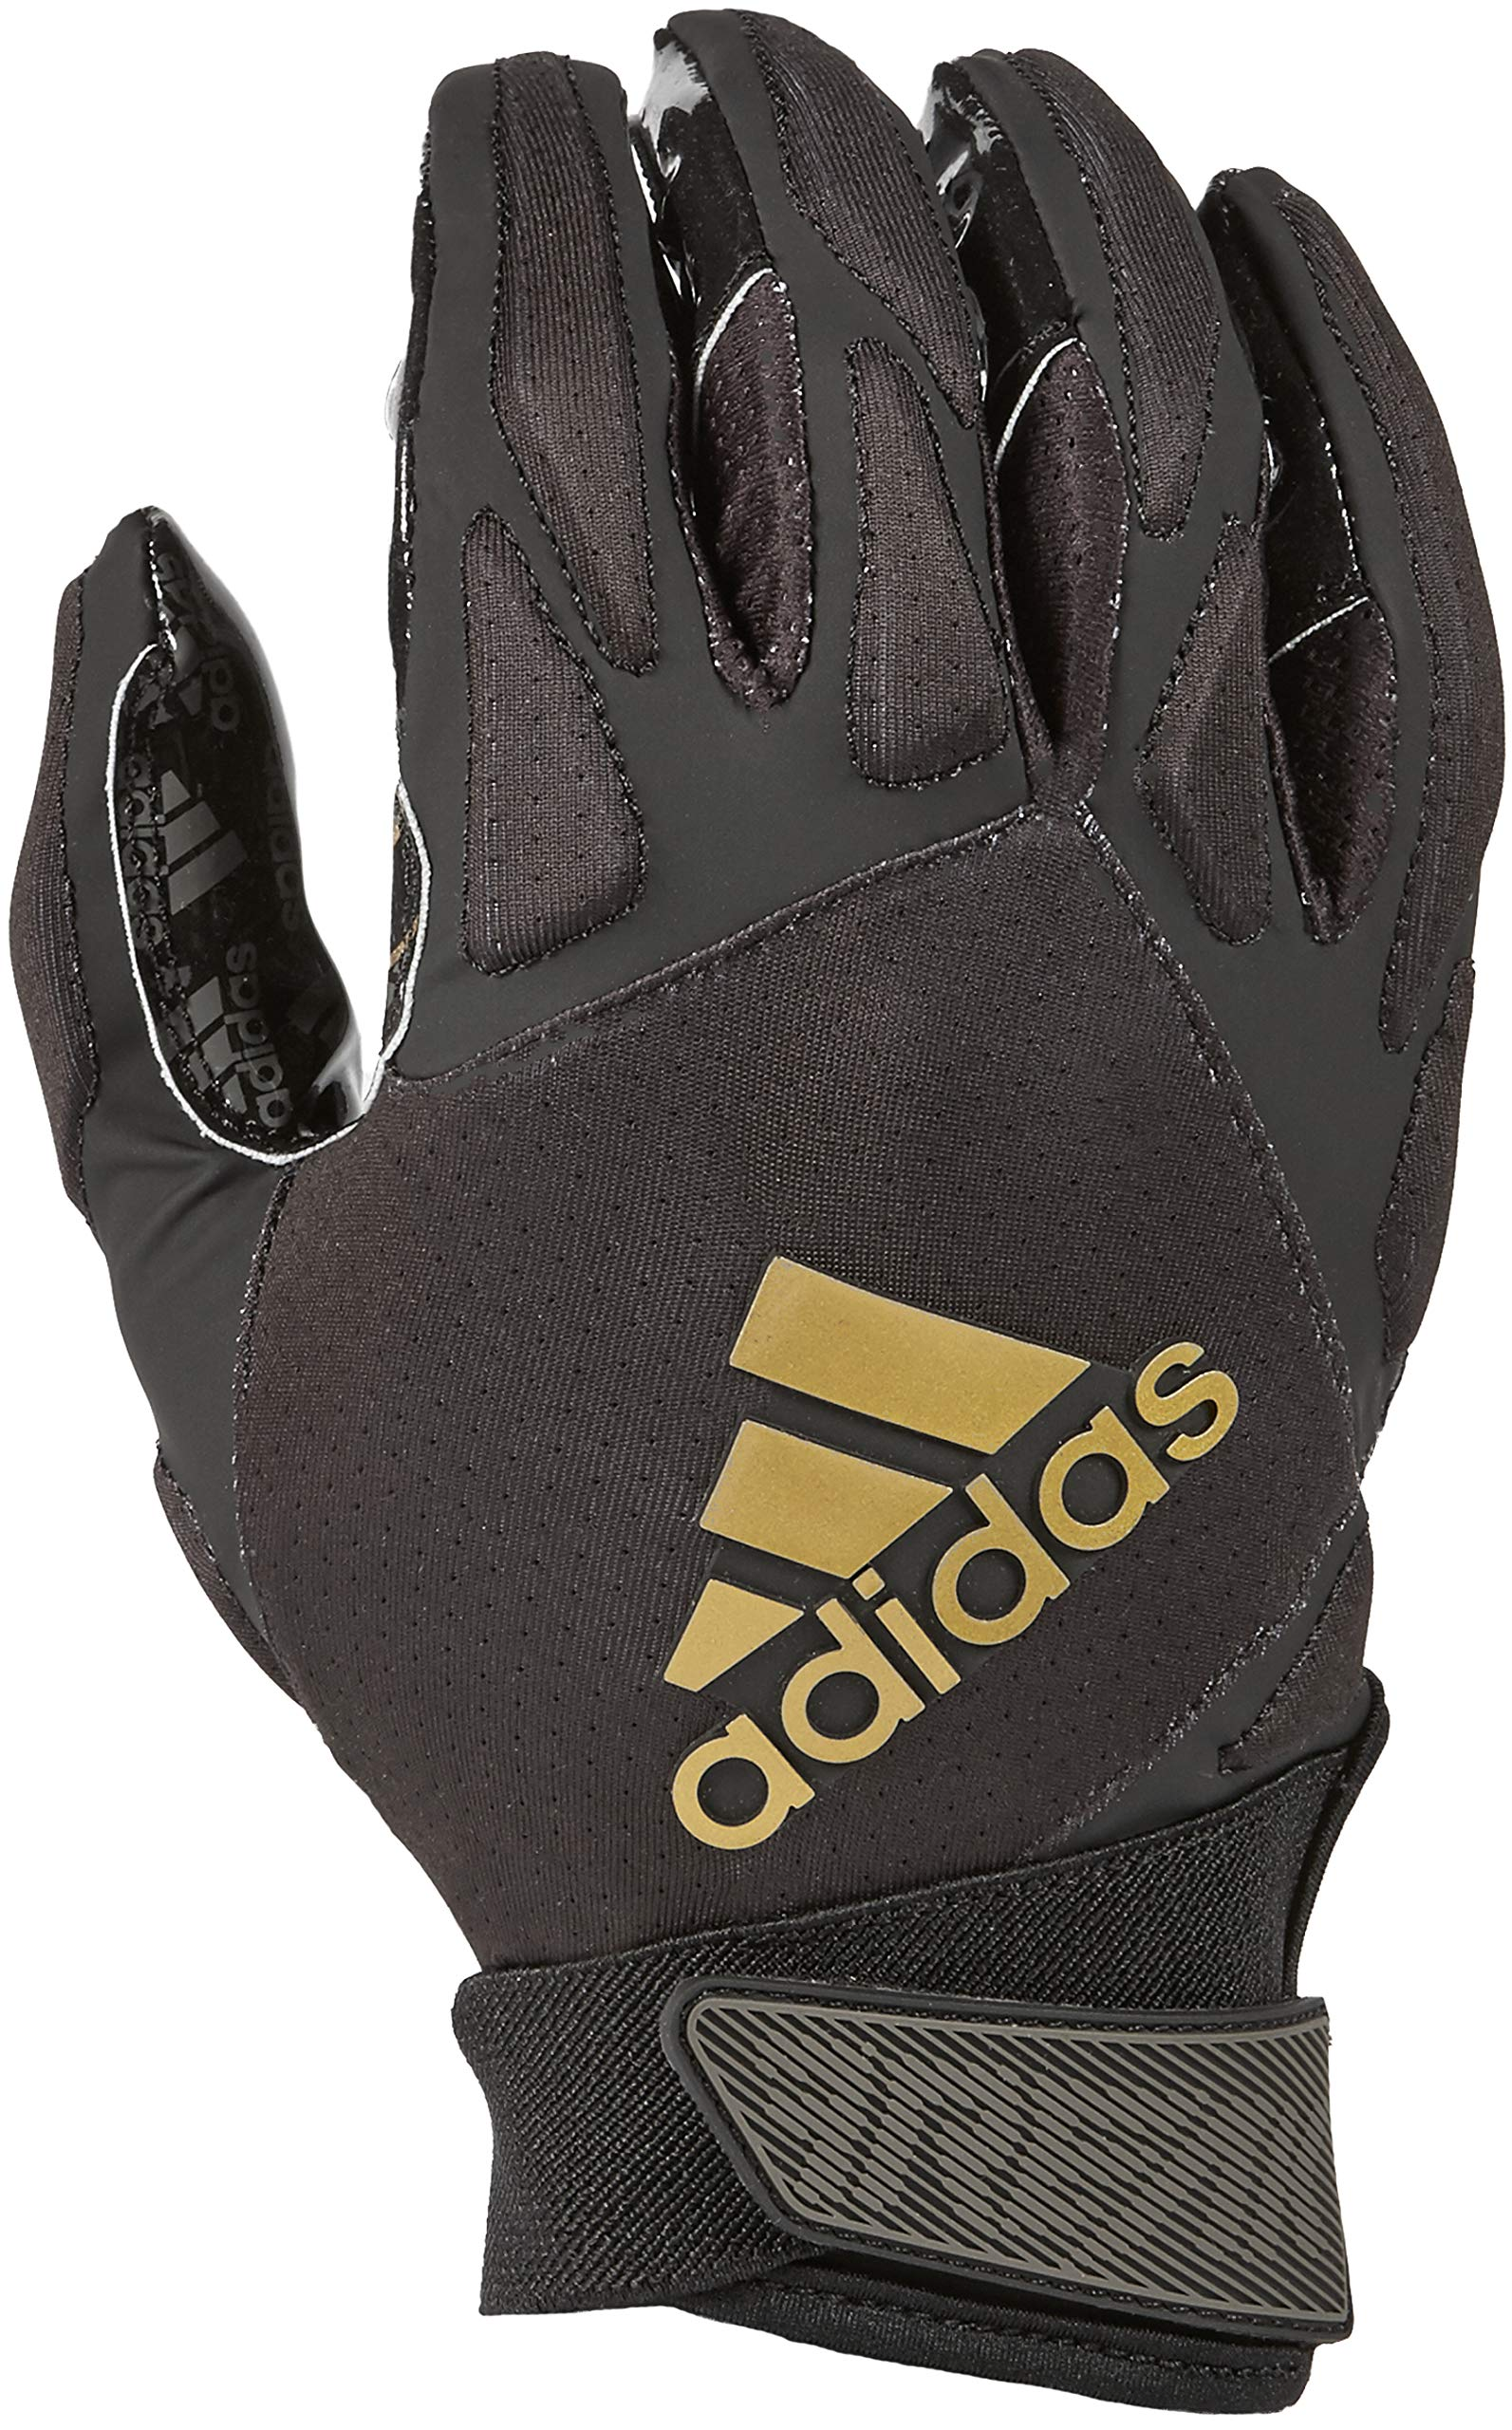 adidas Freak 4.0 Padded Receiver's Football Gloves Black Medium